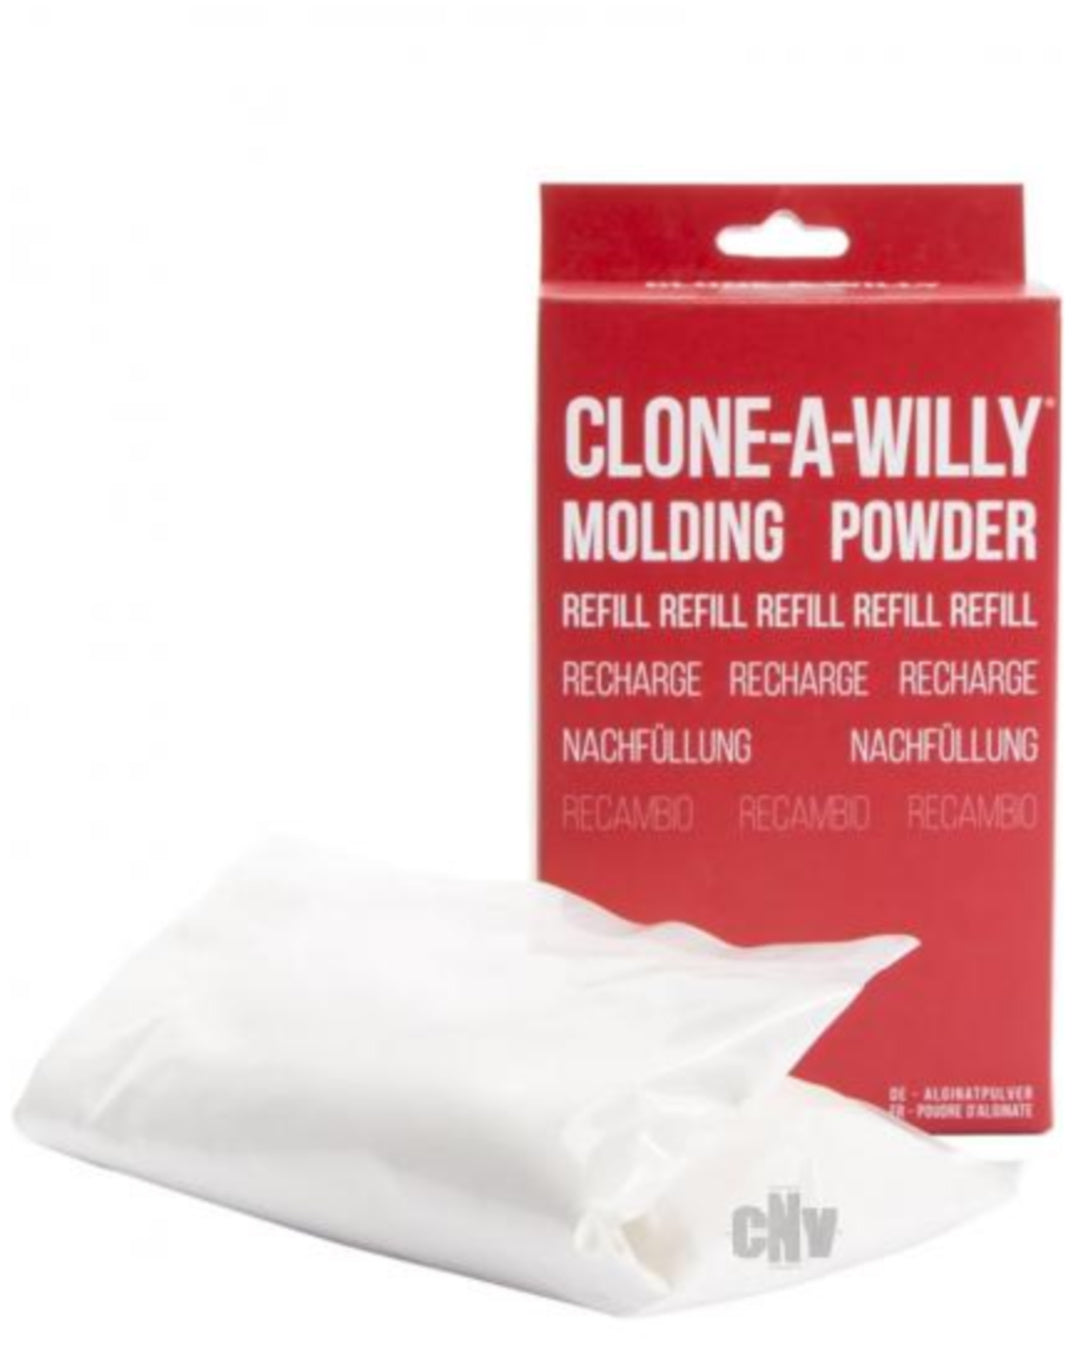 Clone-A-Willy Molding Powder Refill 3oz